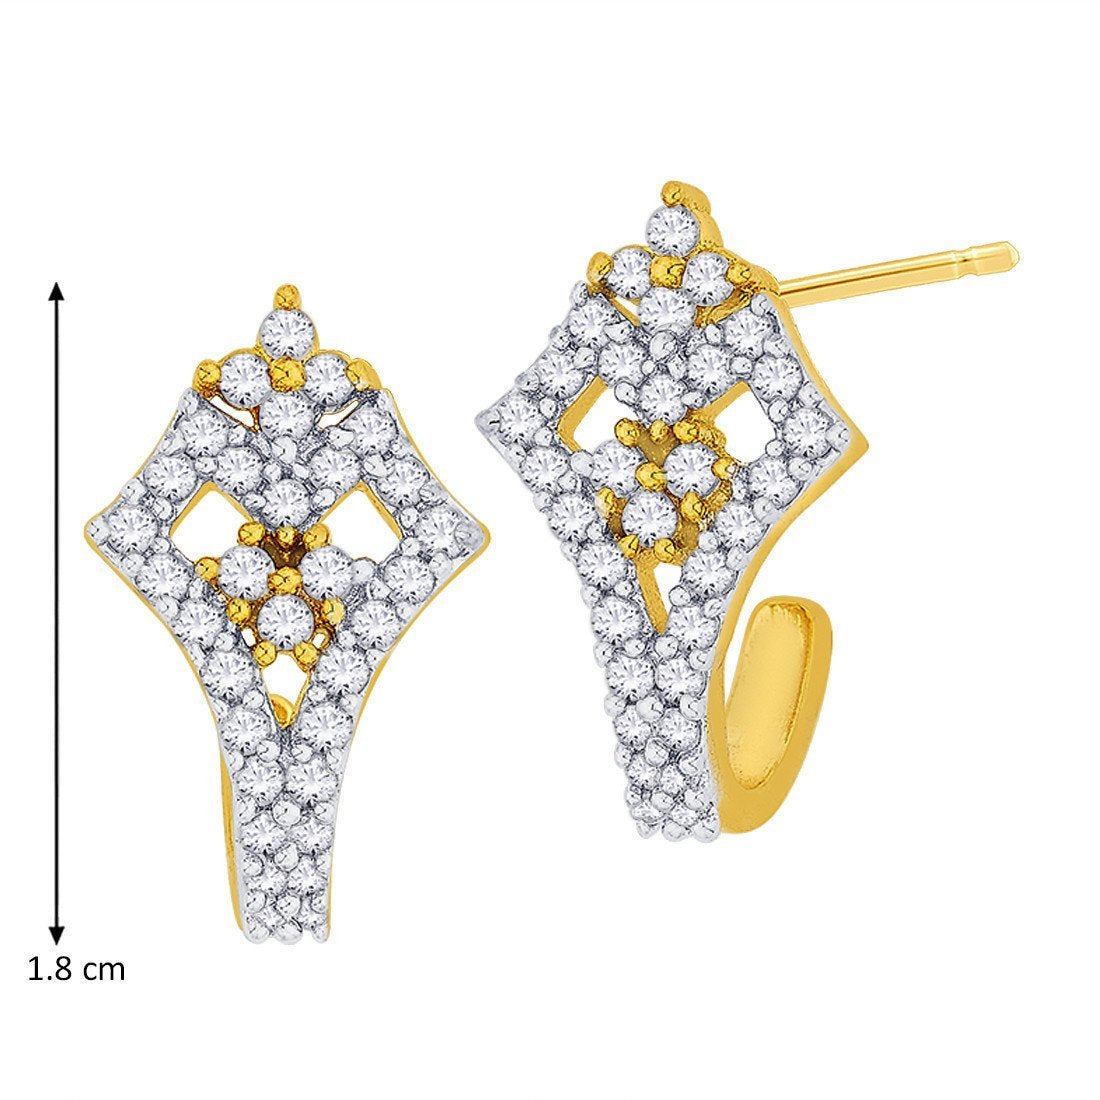 The Neo Elegance Earrings